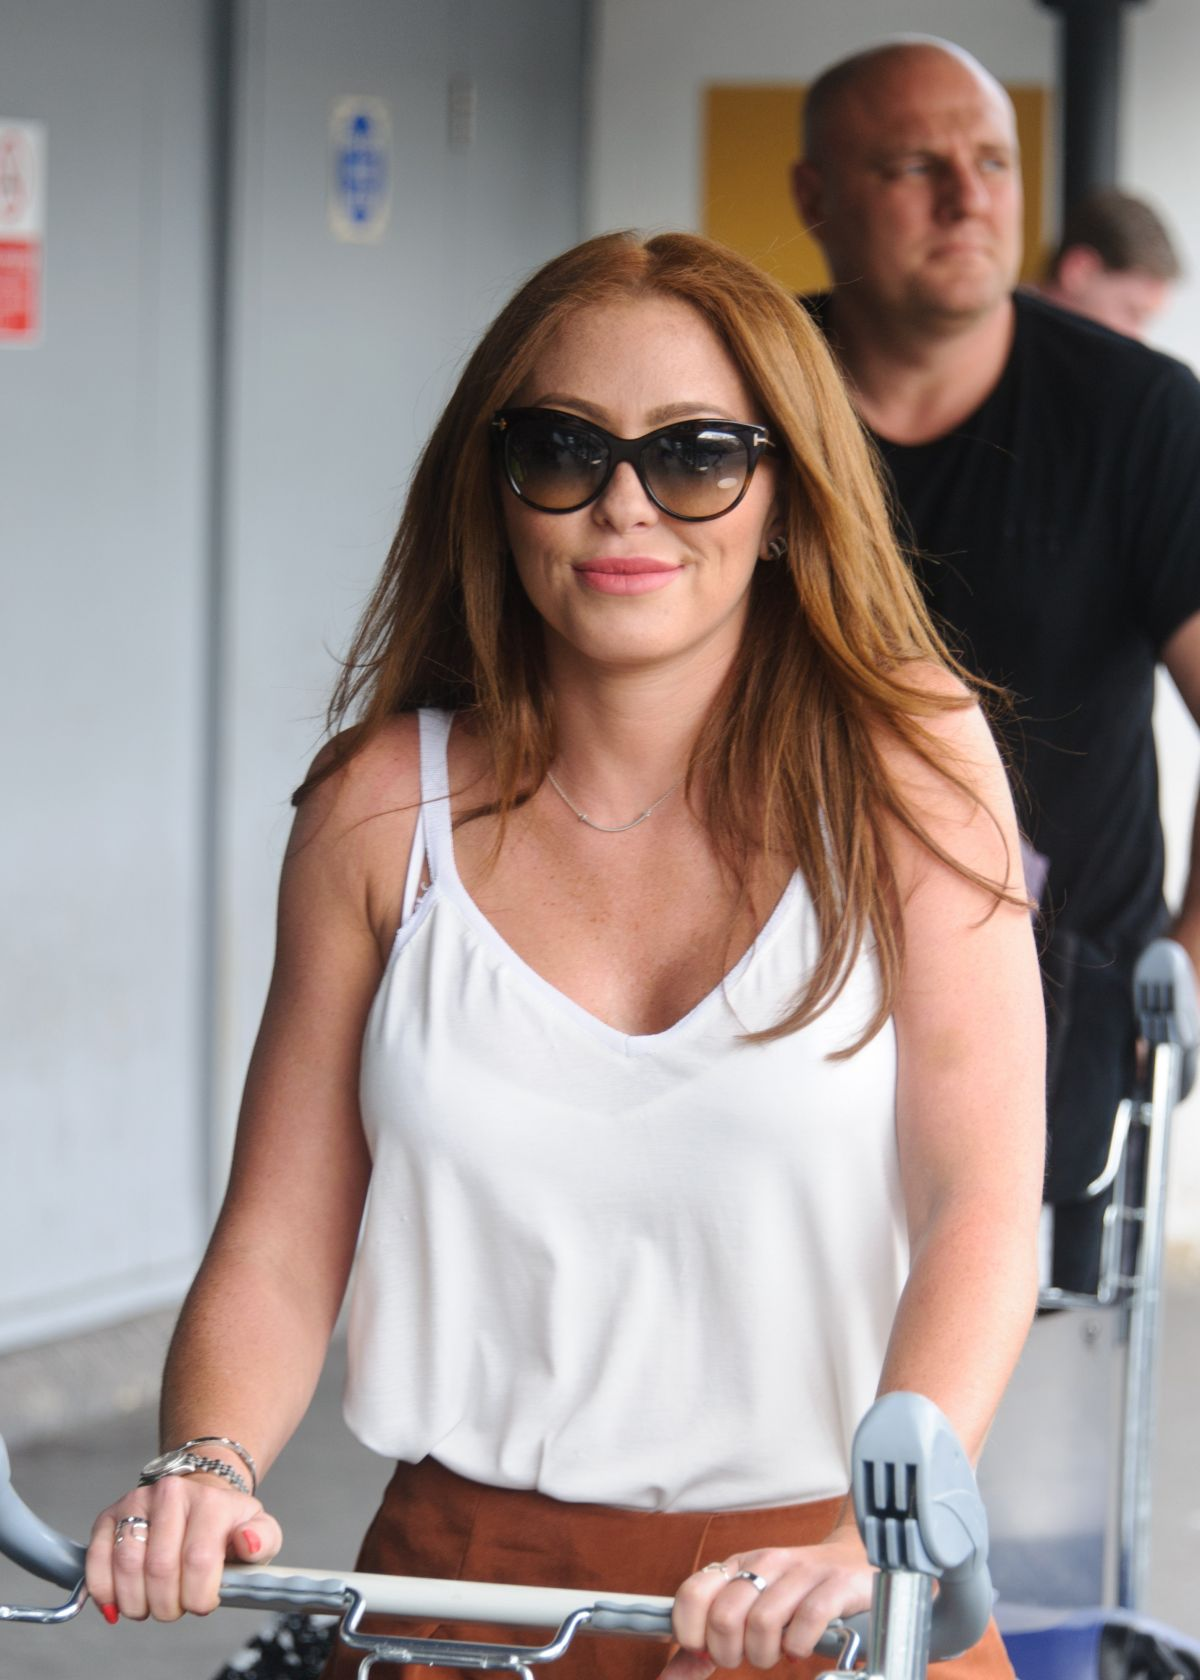 NATASHA HAMILTON at Heathrow Airport in London 07/25/2016